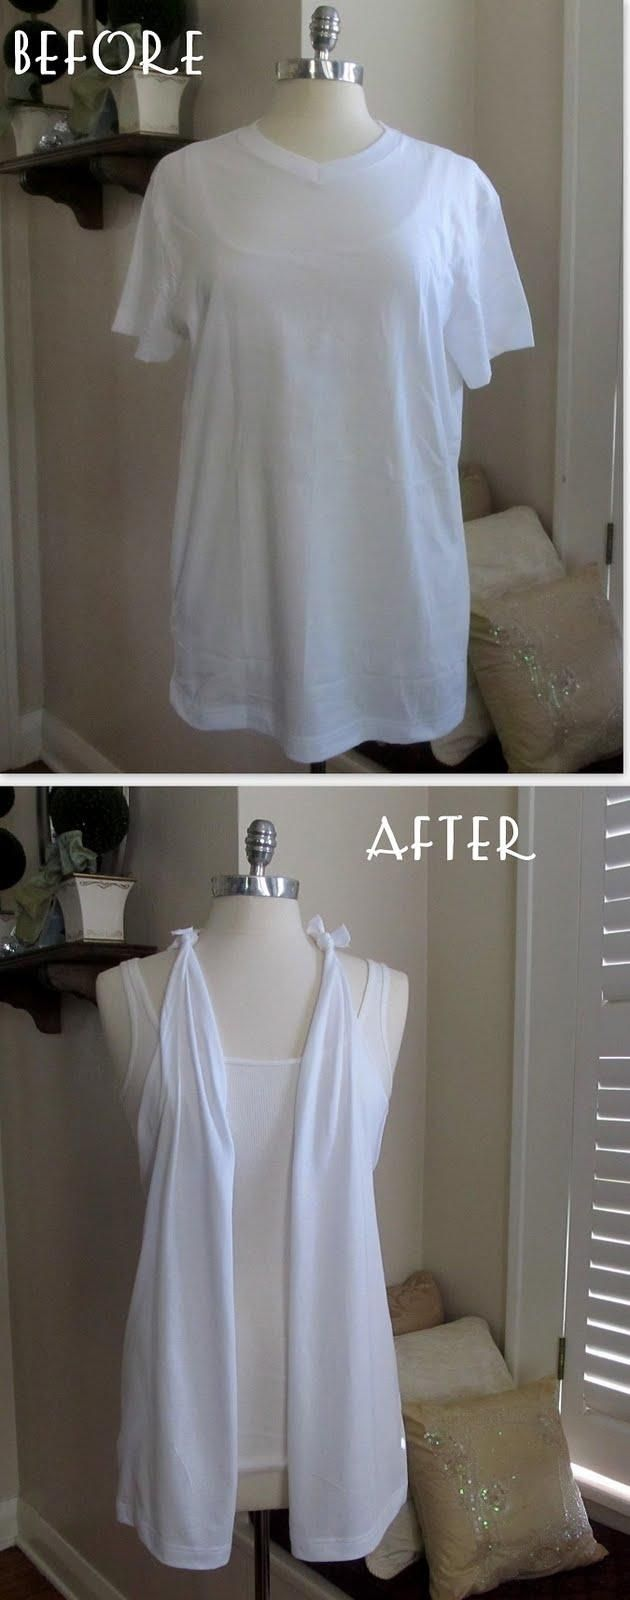 Design t shirt easy - T Shirt Vest Tutorial Diy No Sew T Shirt Vest Super